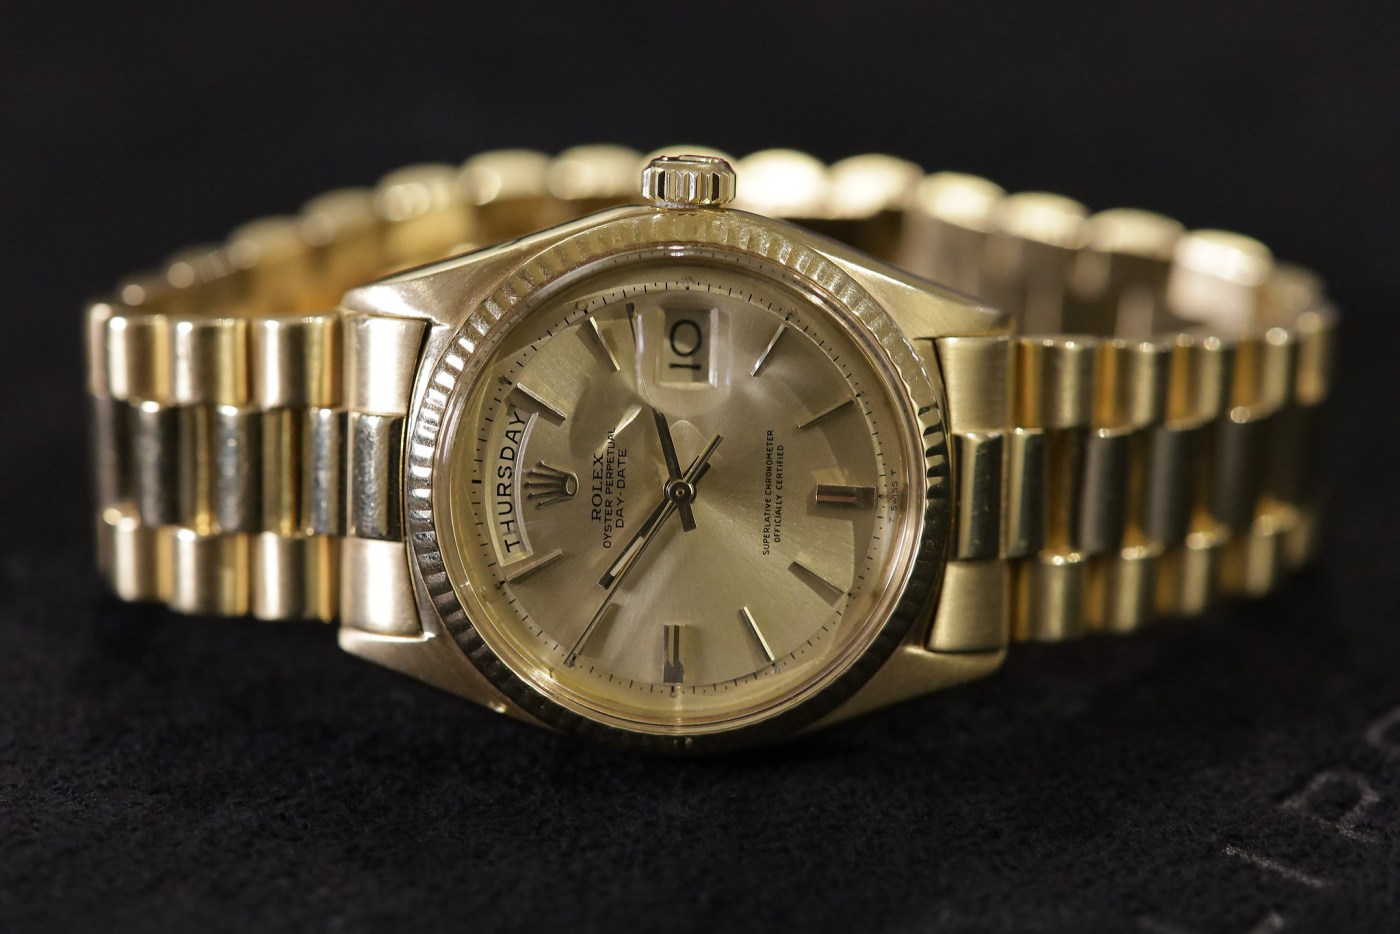 Jack Nicklaus 1967 Yellow Gold Rolex Day-Date Ref. 1803 laying on side